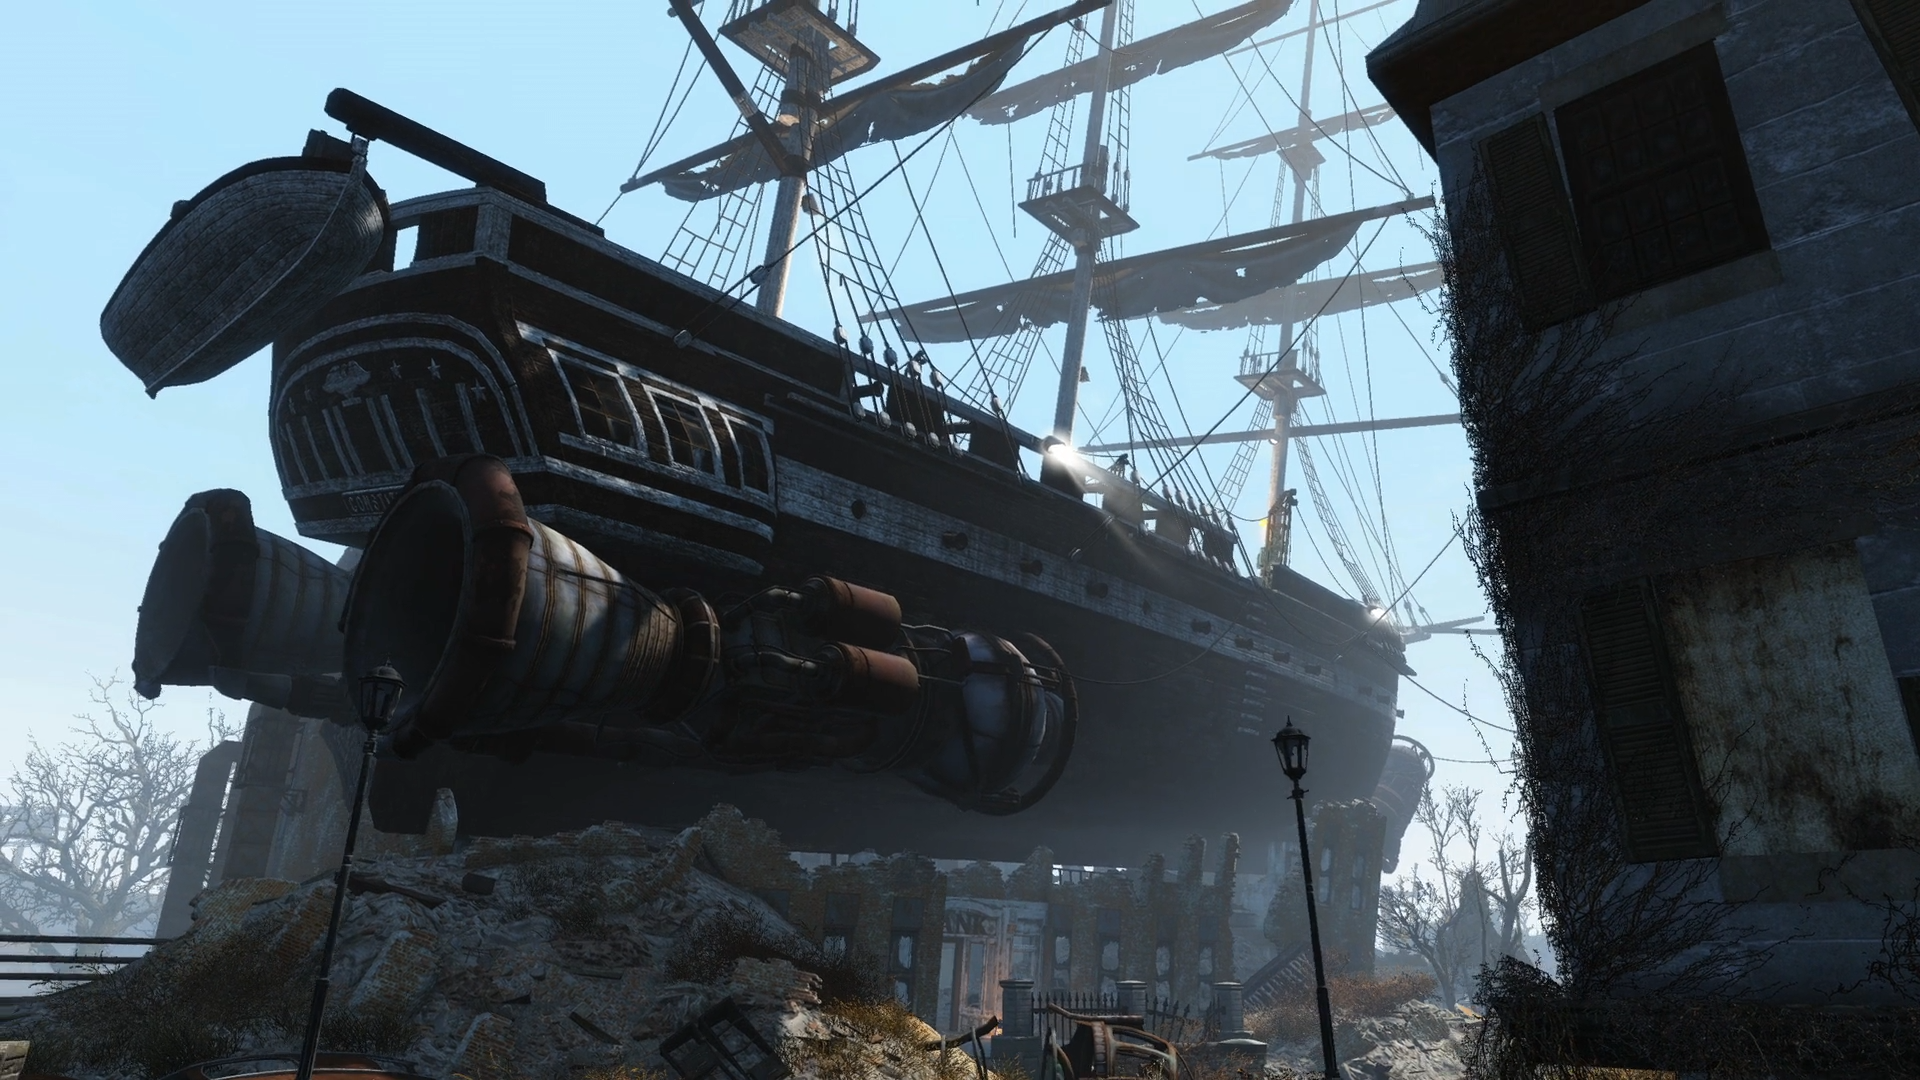 Uss Constitution Fallout Wiki Fandom Powered By Wikia Ship Diagram With Labels Google Search Pirates Pirate Ships